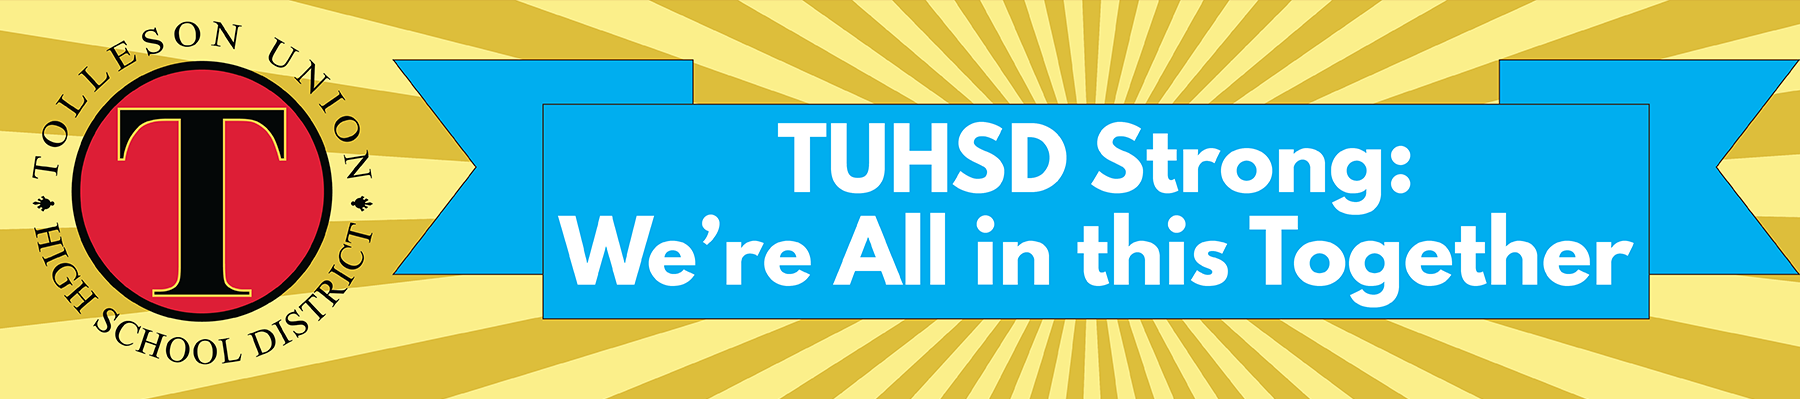 TUHSD Strong - We're all in this together.